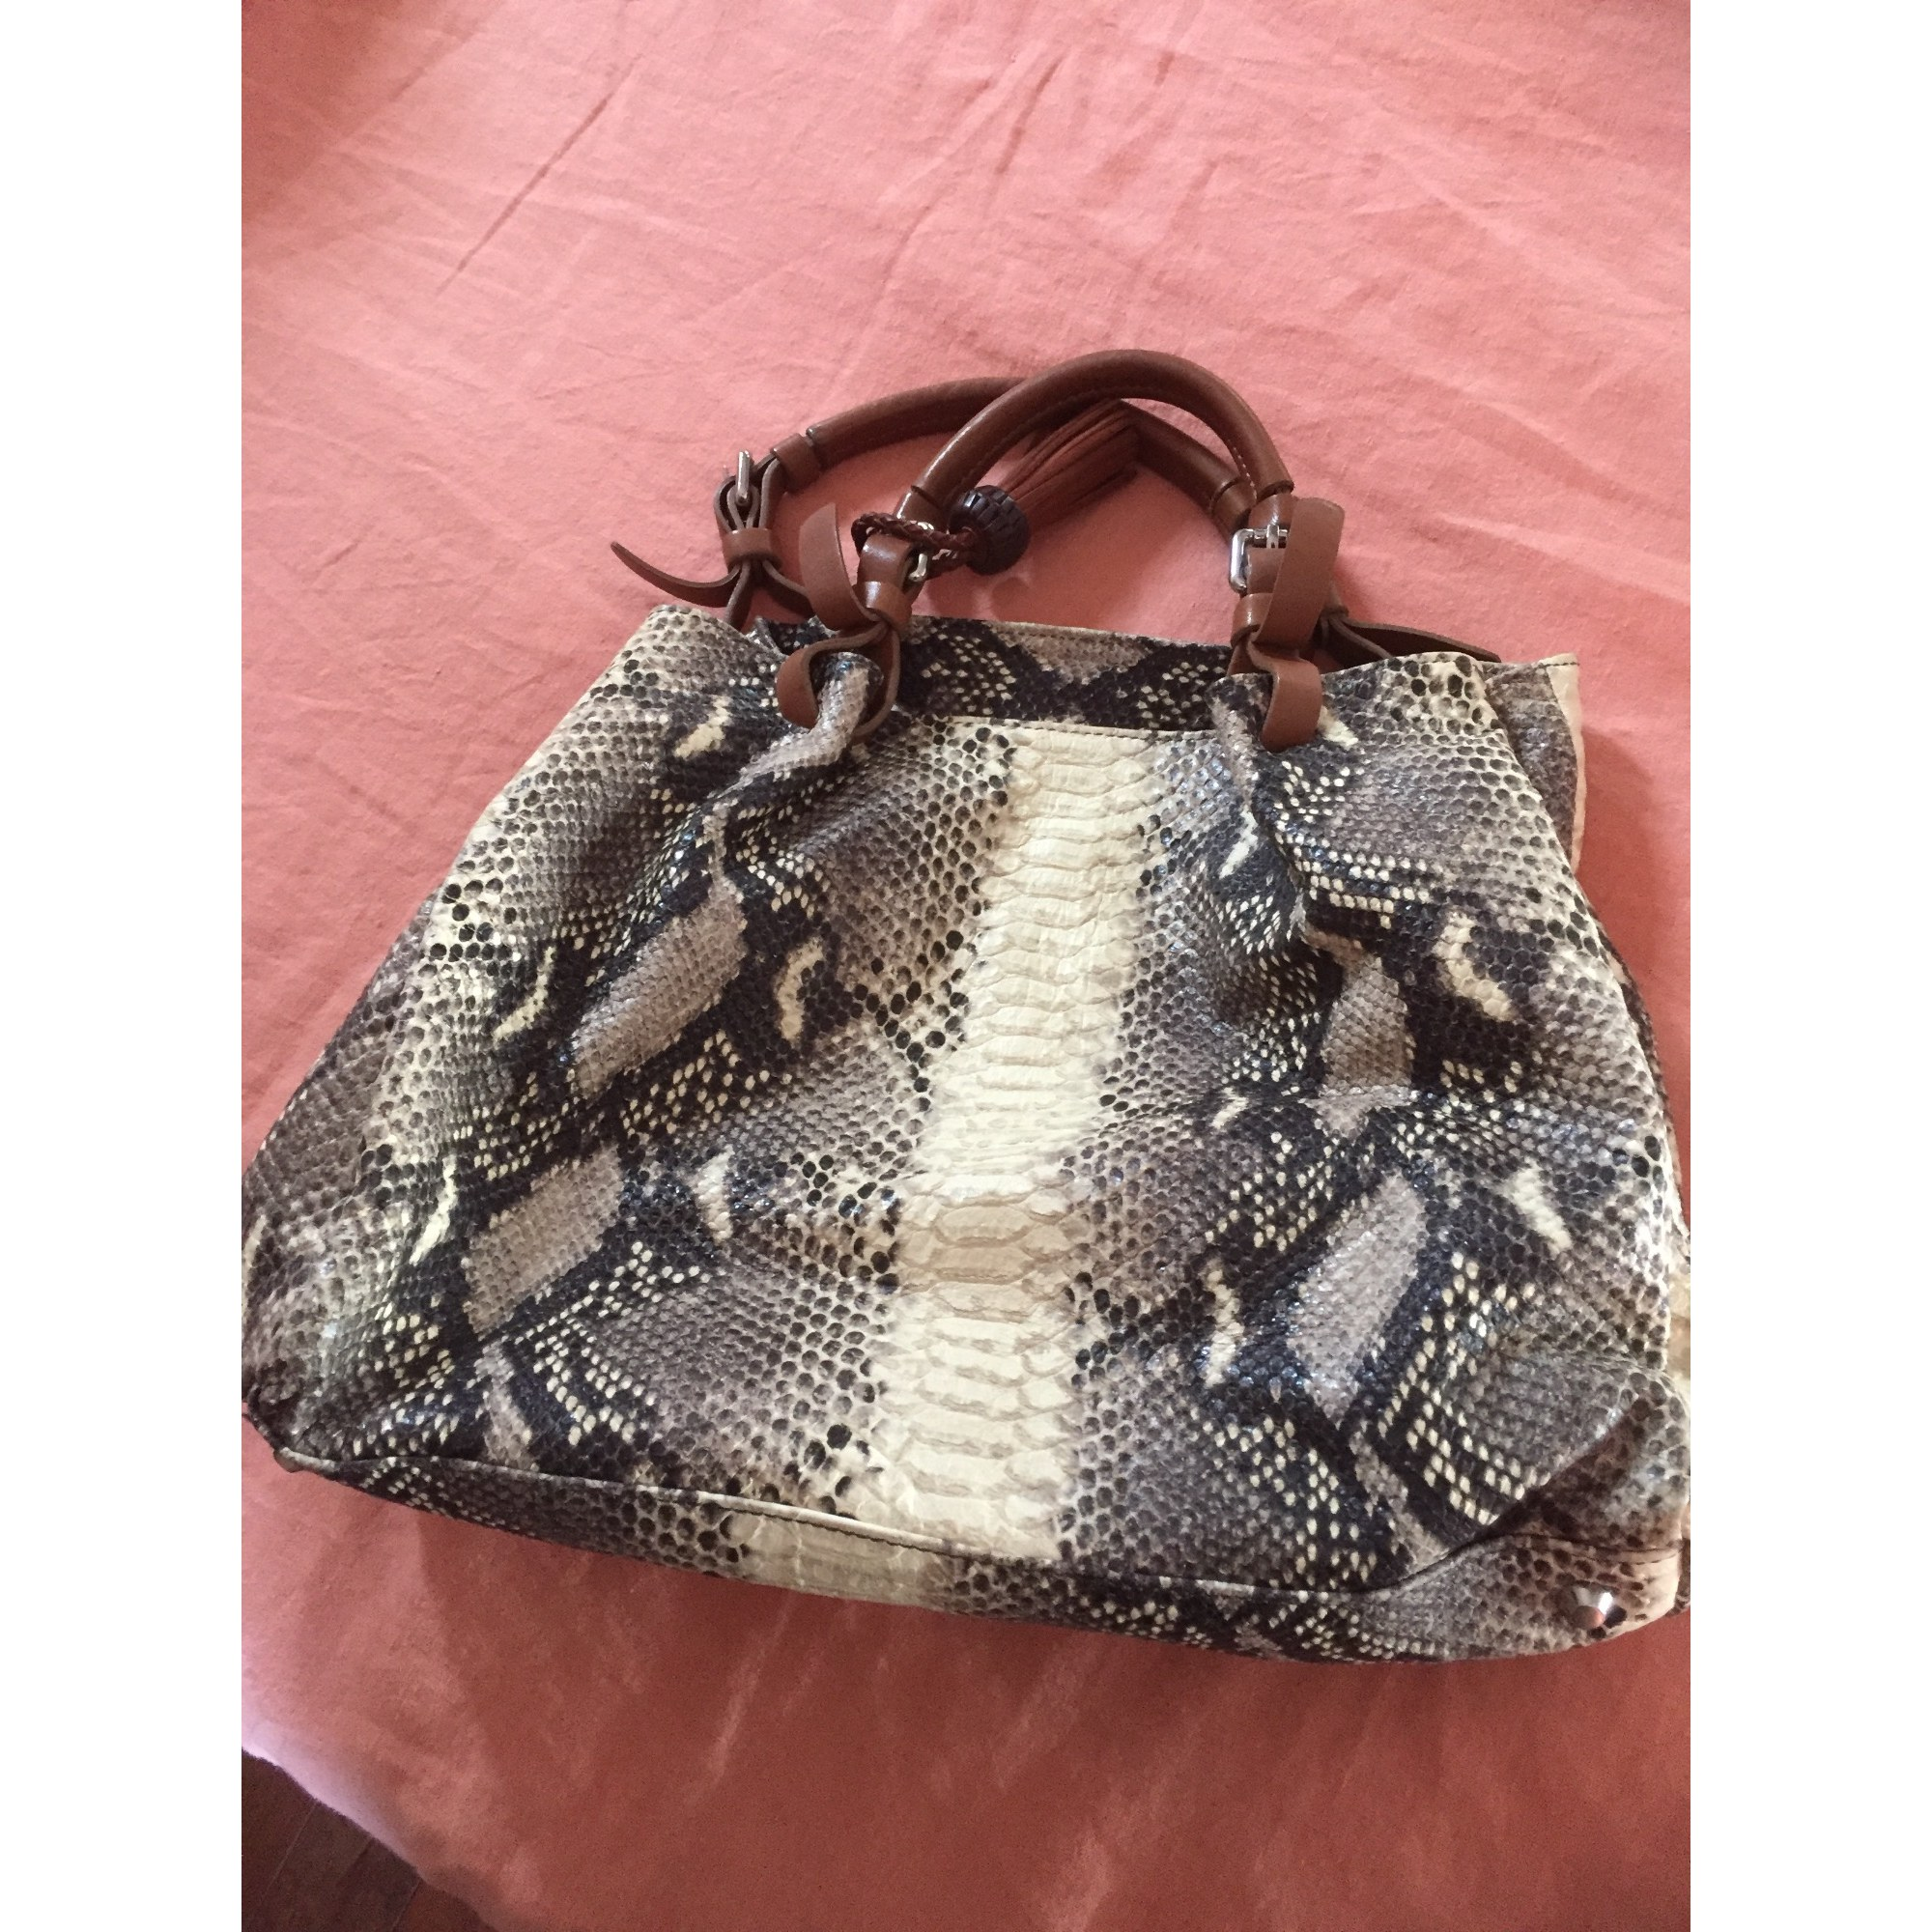 Sac à main en cuir FAIRMOUNT cuir animalier